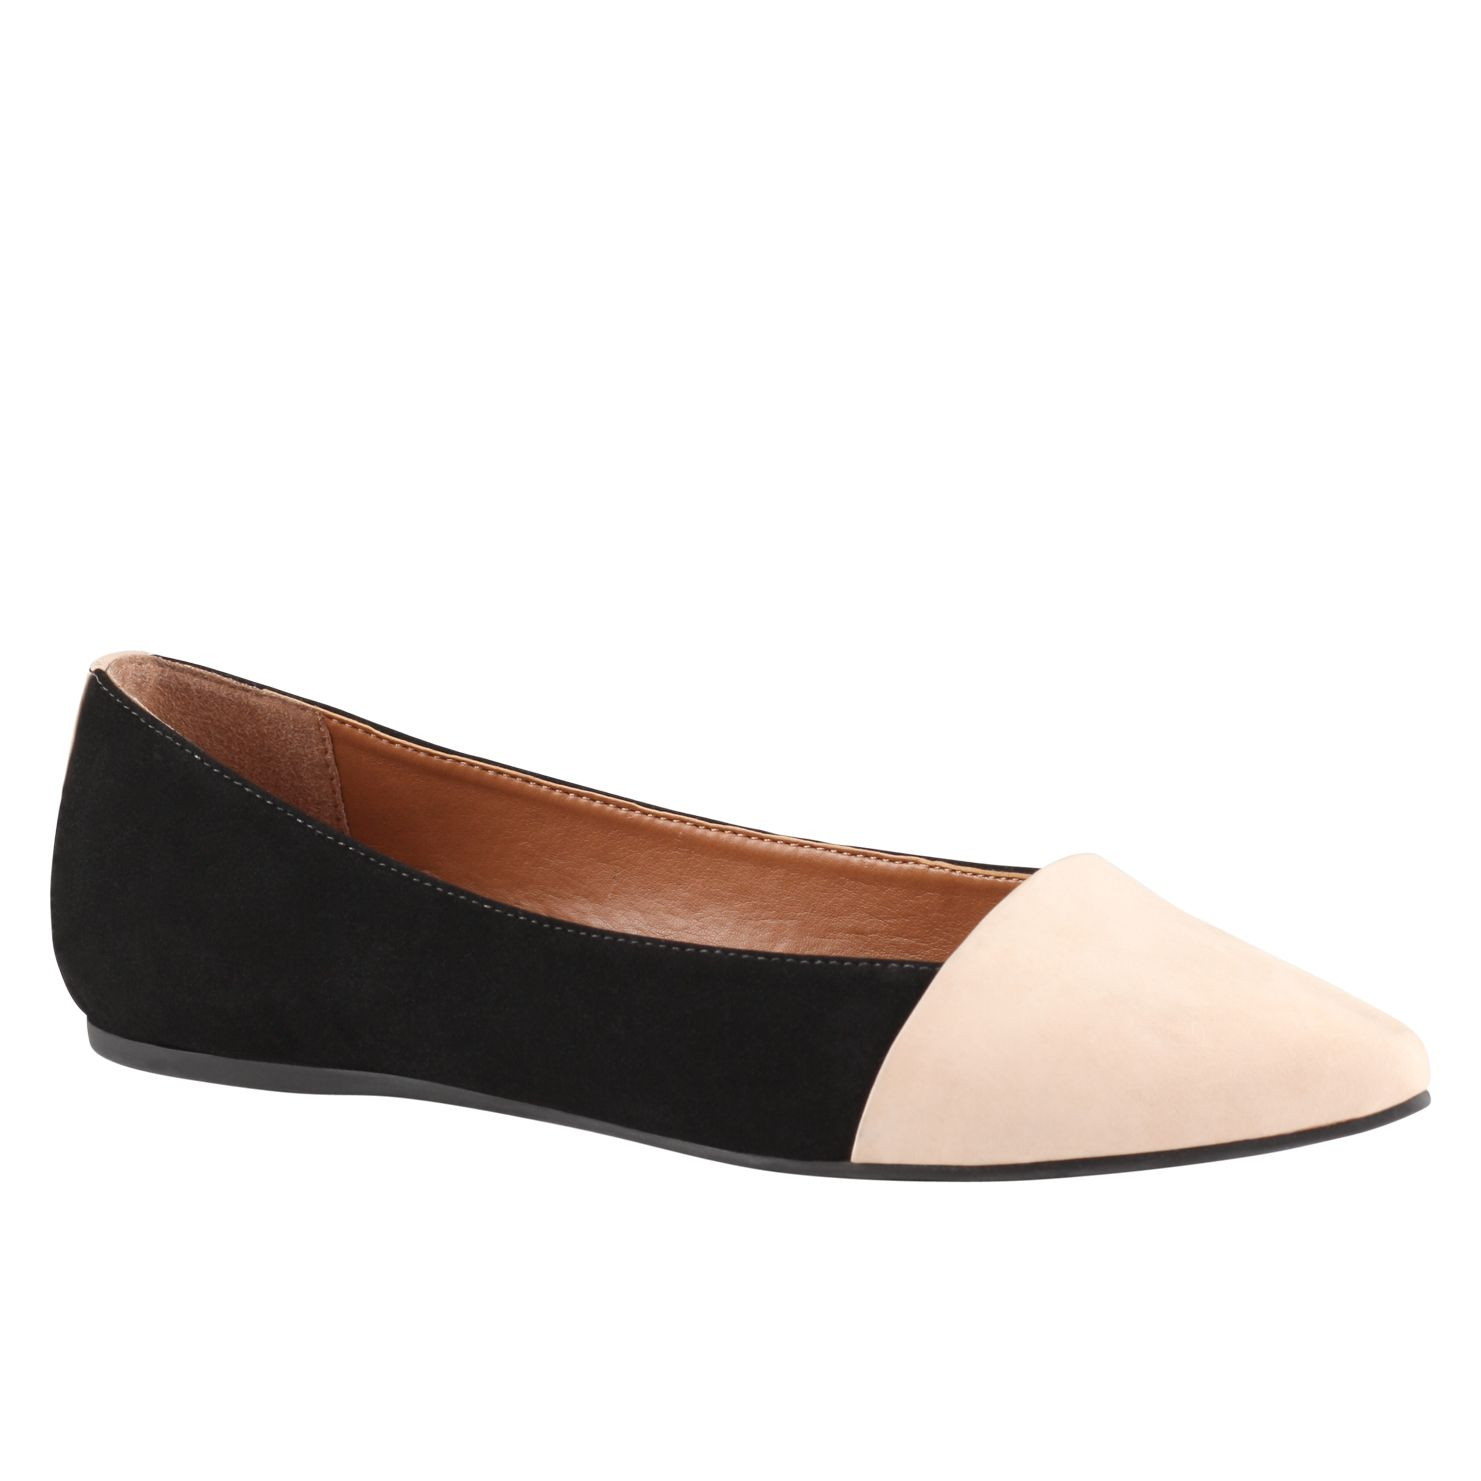 Unissa pointed toe pump shoes